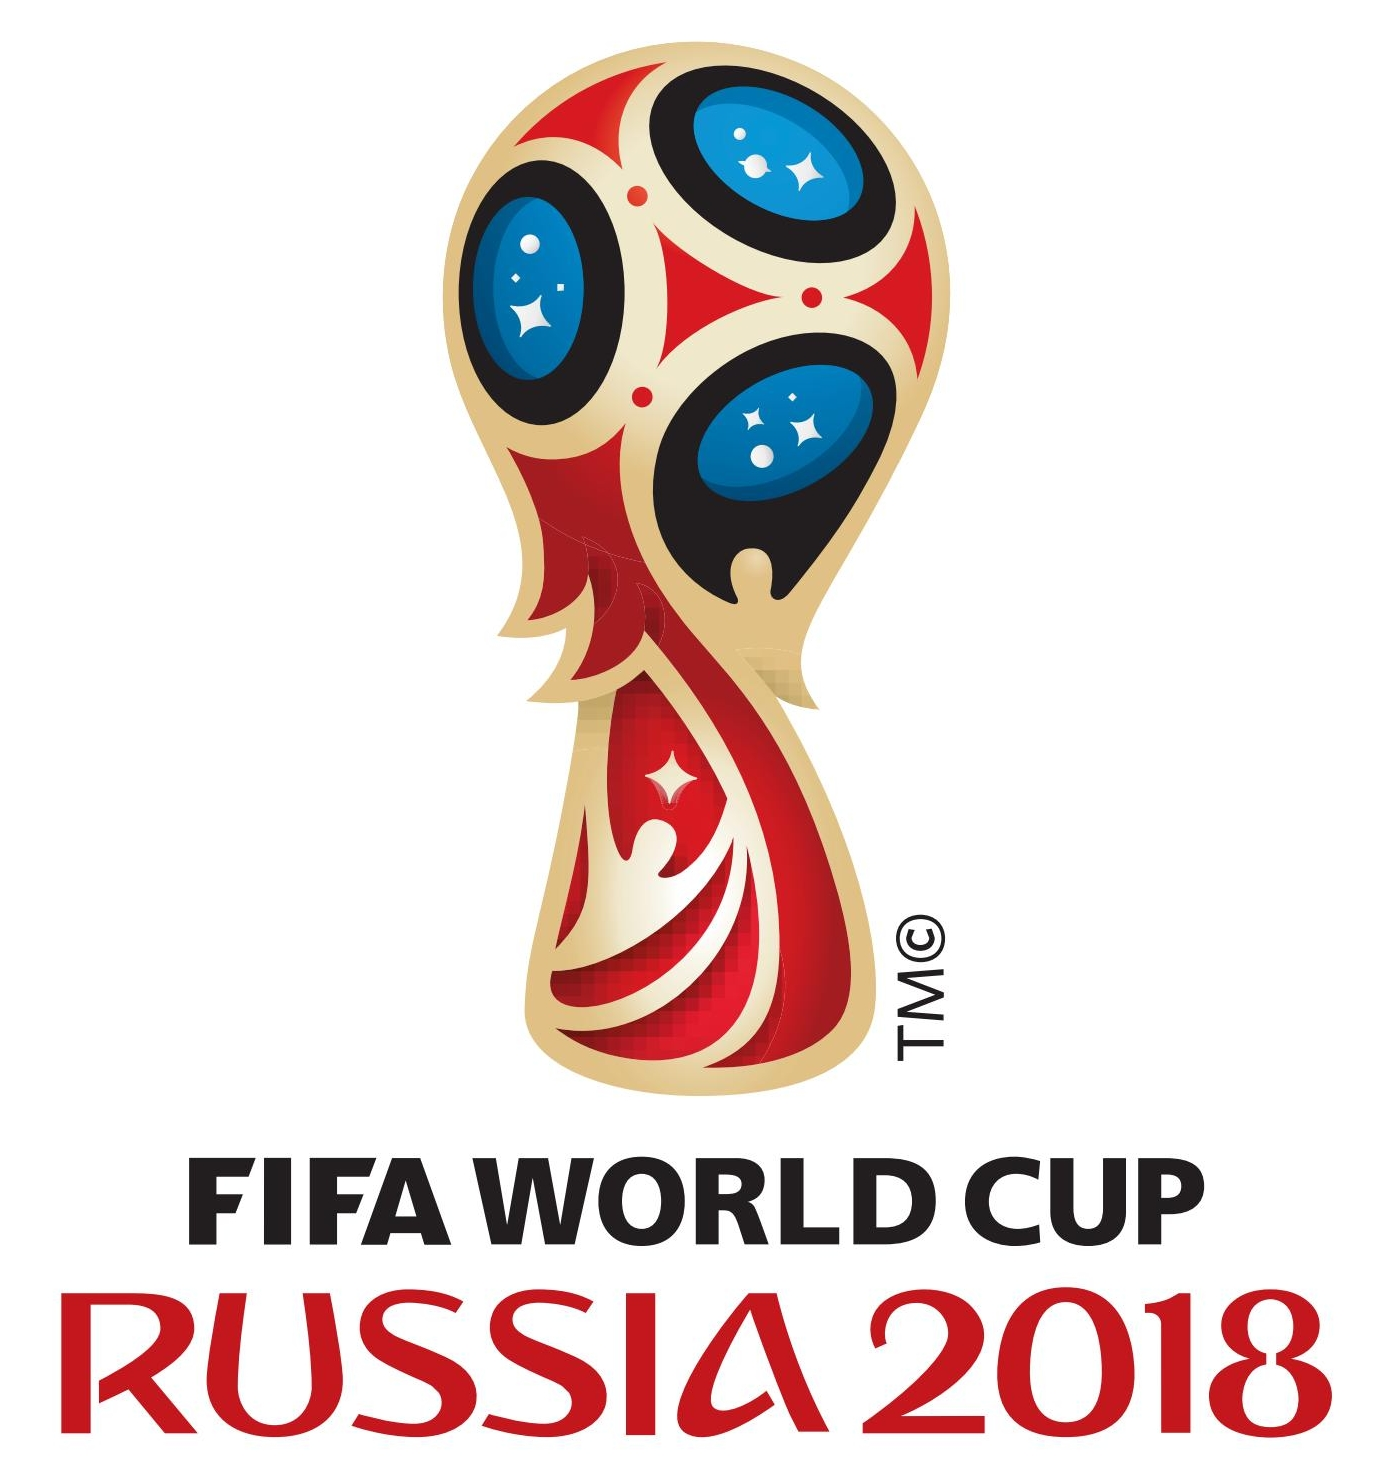 2018 World Cup logo vector, 2